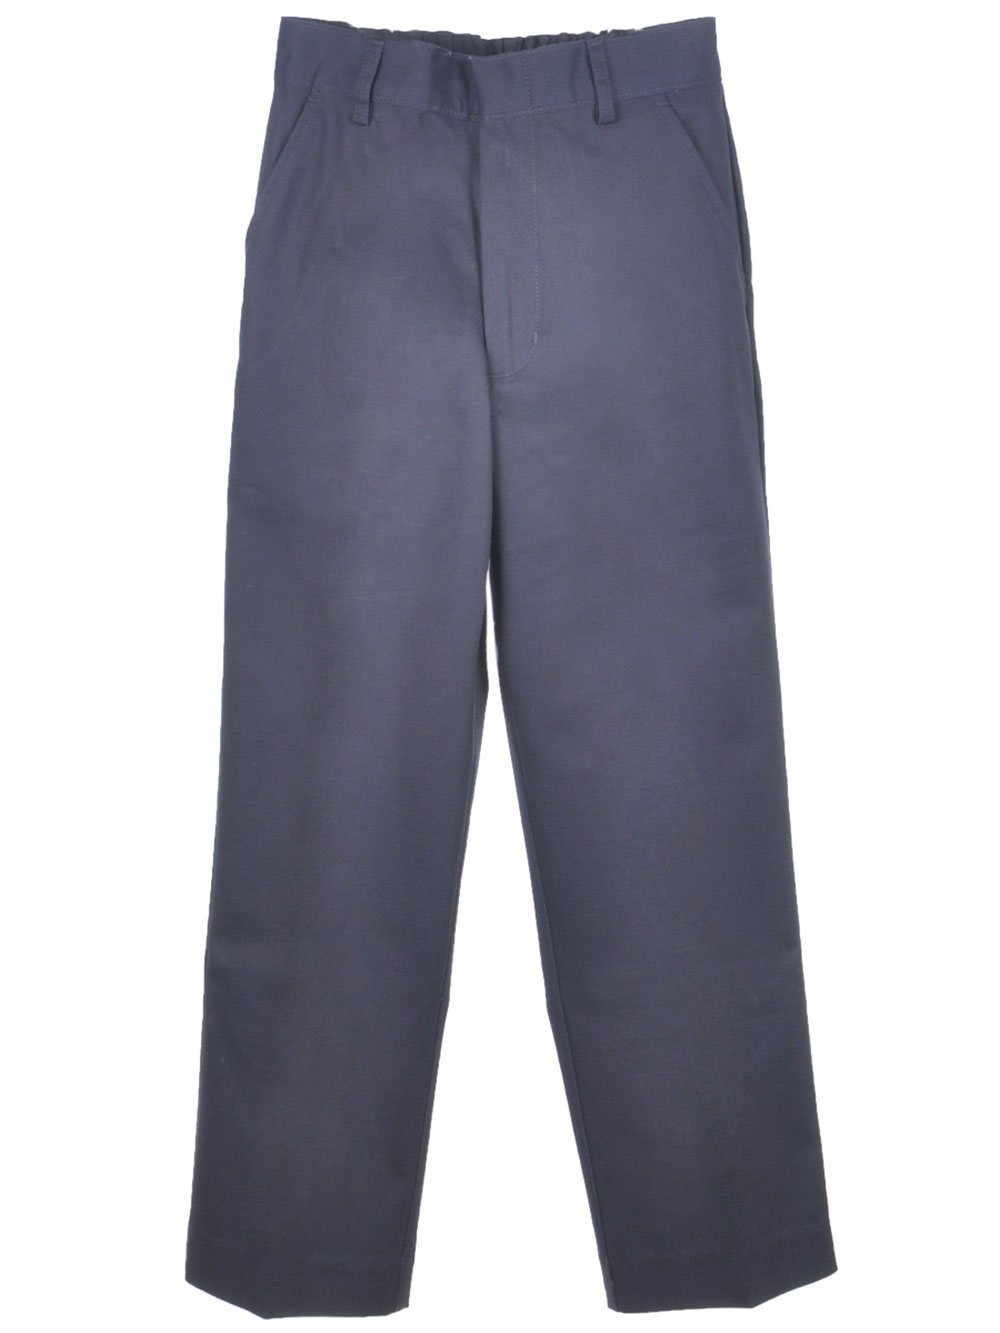 Image of Preferred School Uniforms Big Boys Double Knee Flat Front Pants Sizes 8  20  midnight navy 20